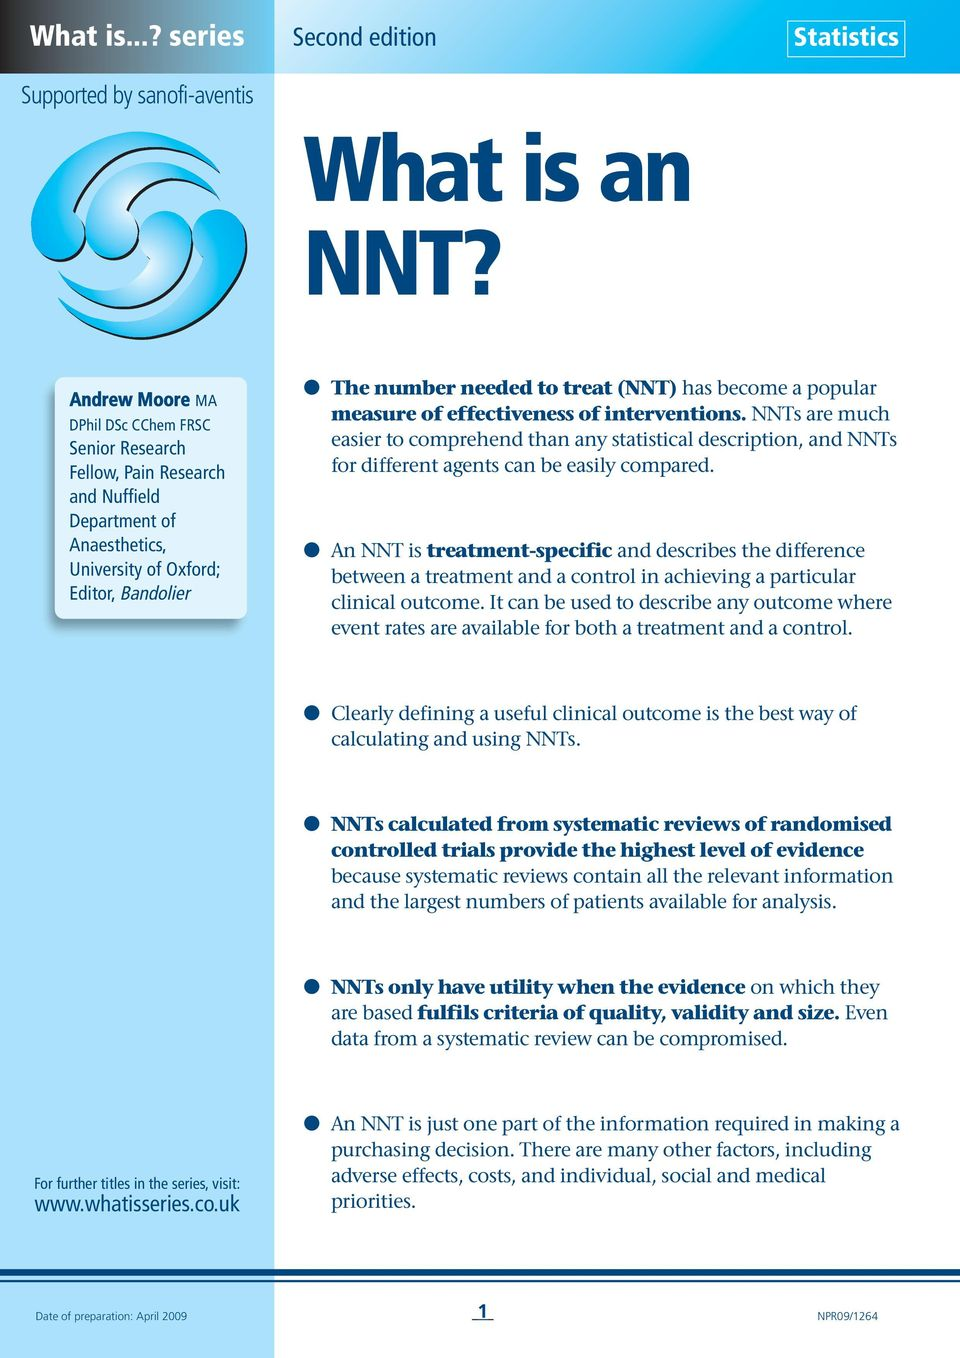 a popular measure of effectiveness of interventions. NNTs are much easier to comprehend than any statistical description, and NNTs for different agents can be easily compared.